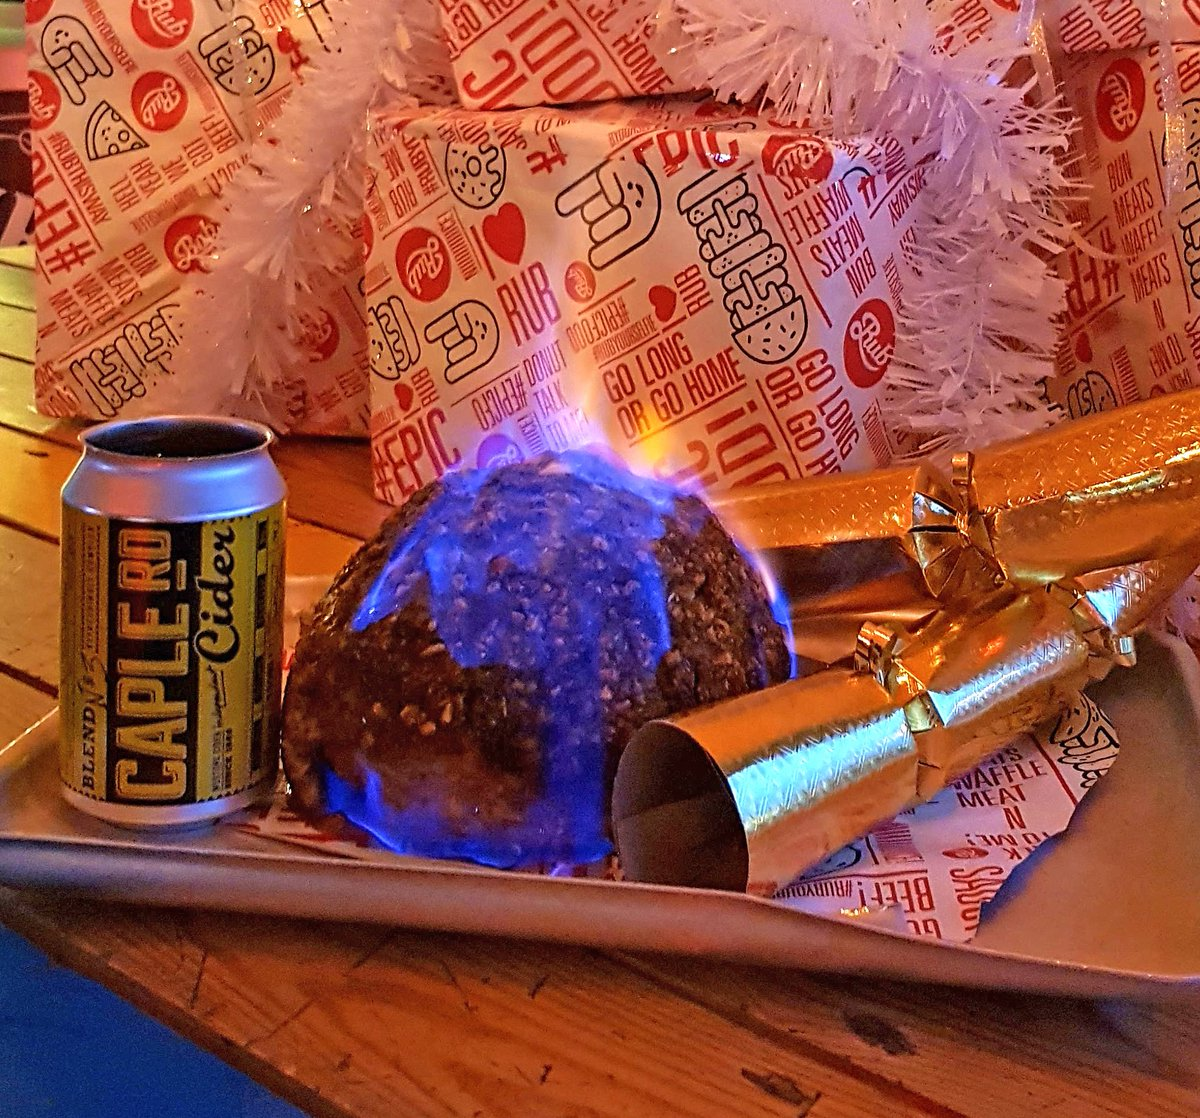 rub smokehouse bar on twitter this christmas get stuffed with the giant stuffing ball its stuffed with a christmas dinner smoked low n slow for - Giant Christmas Hours